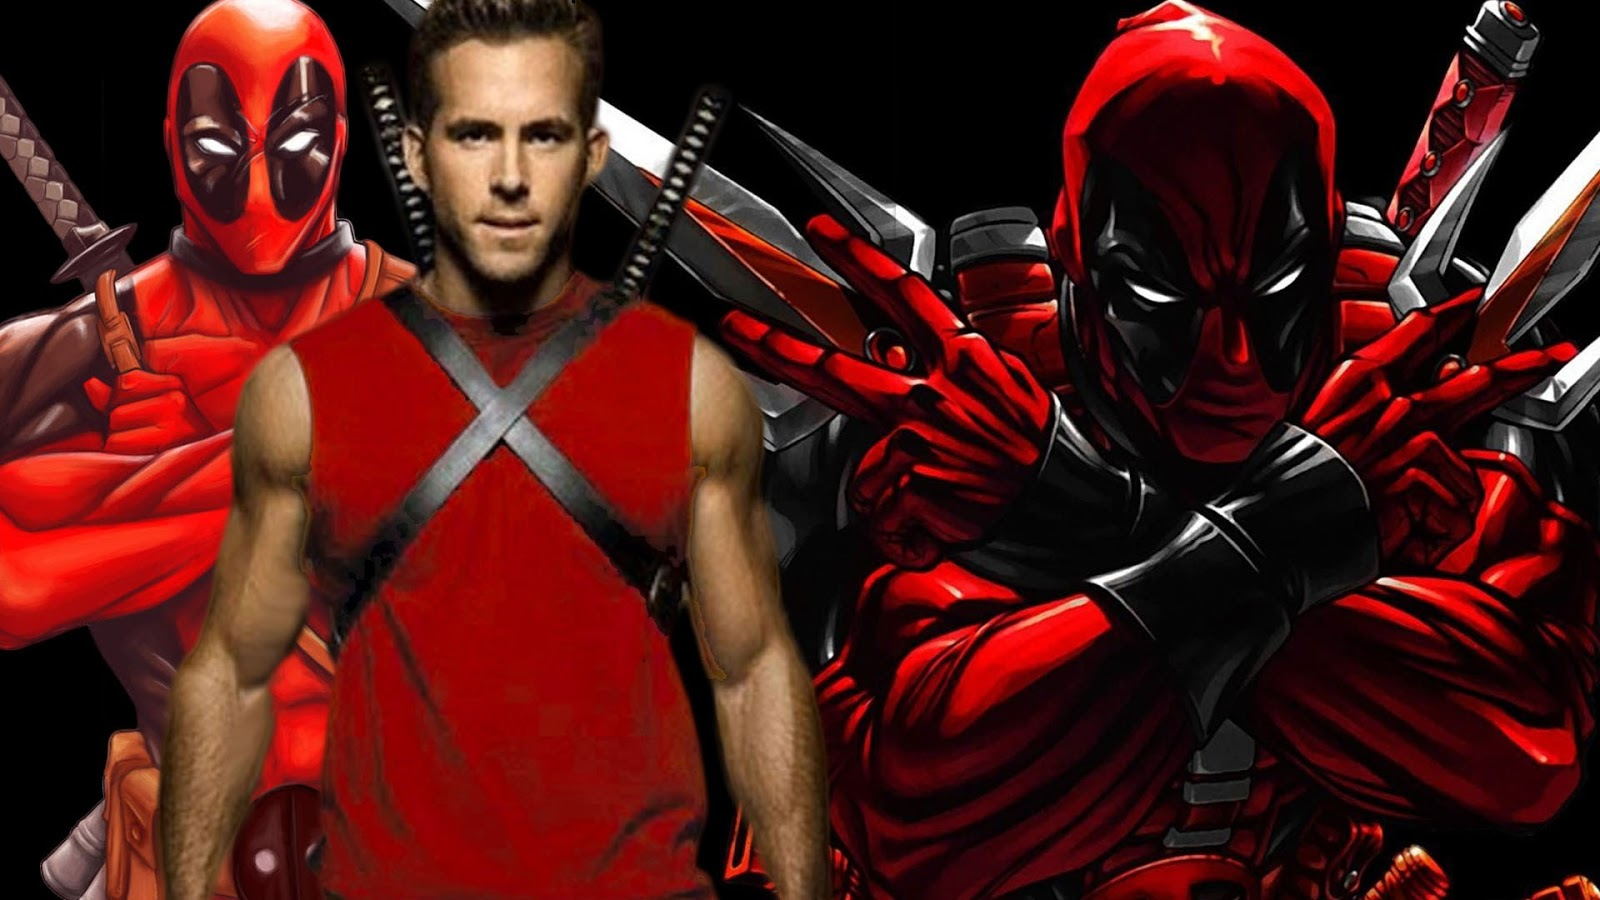 Fox in talks with marvel for live action x men tv series for Deadpool show